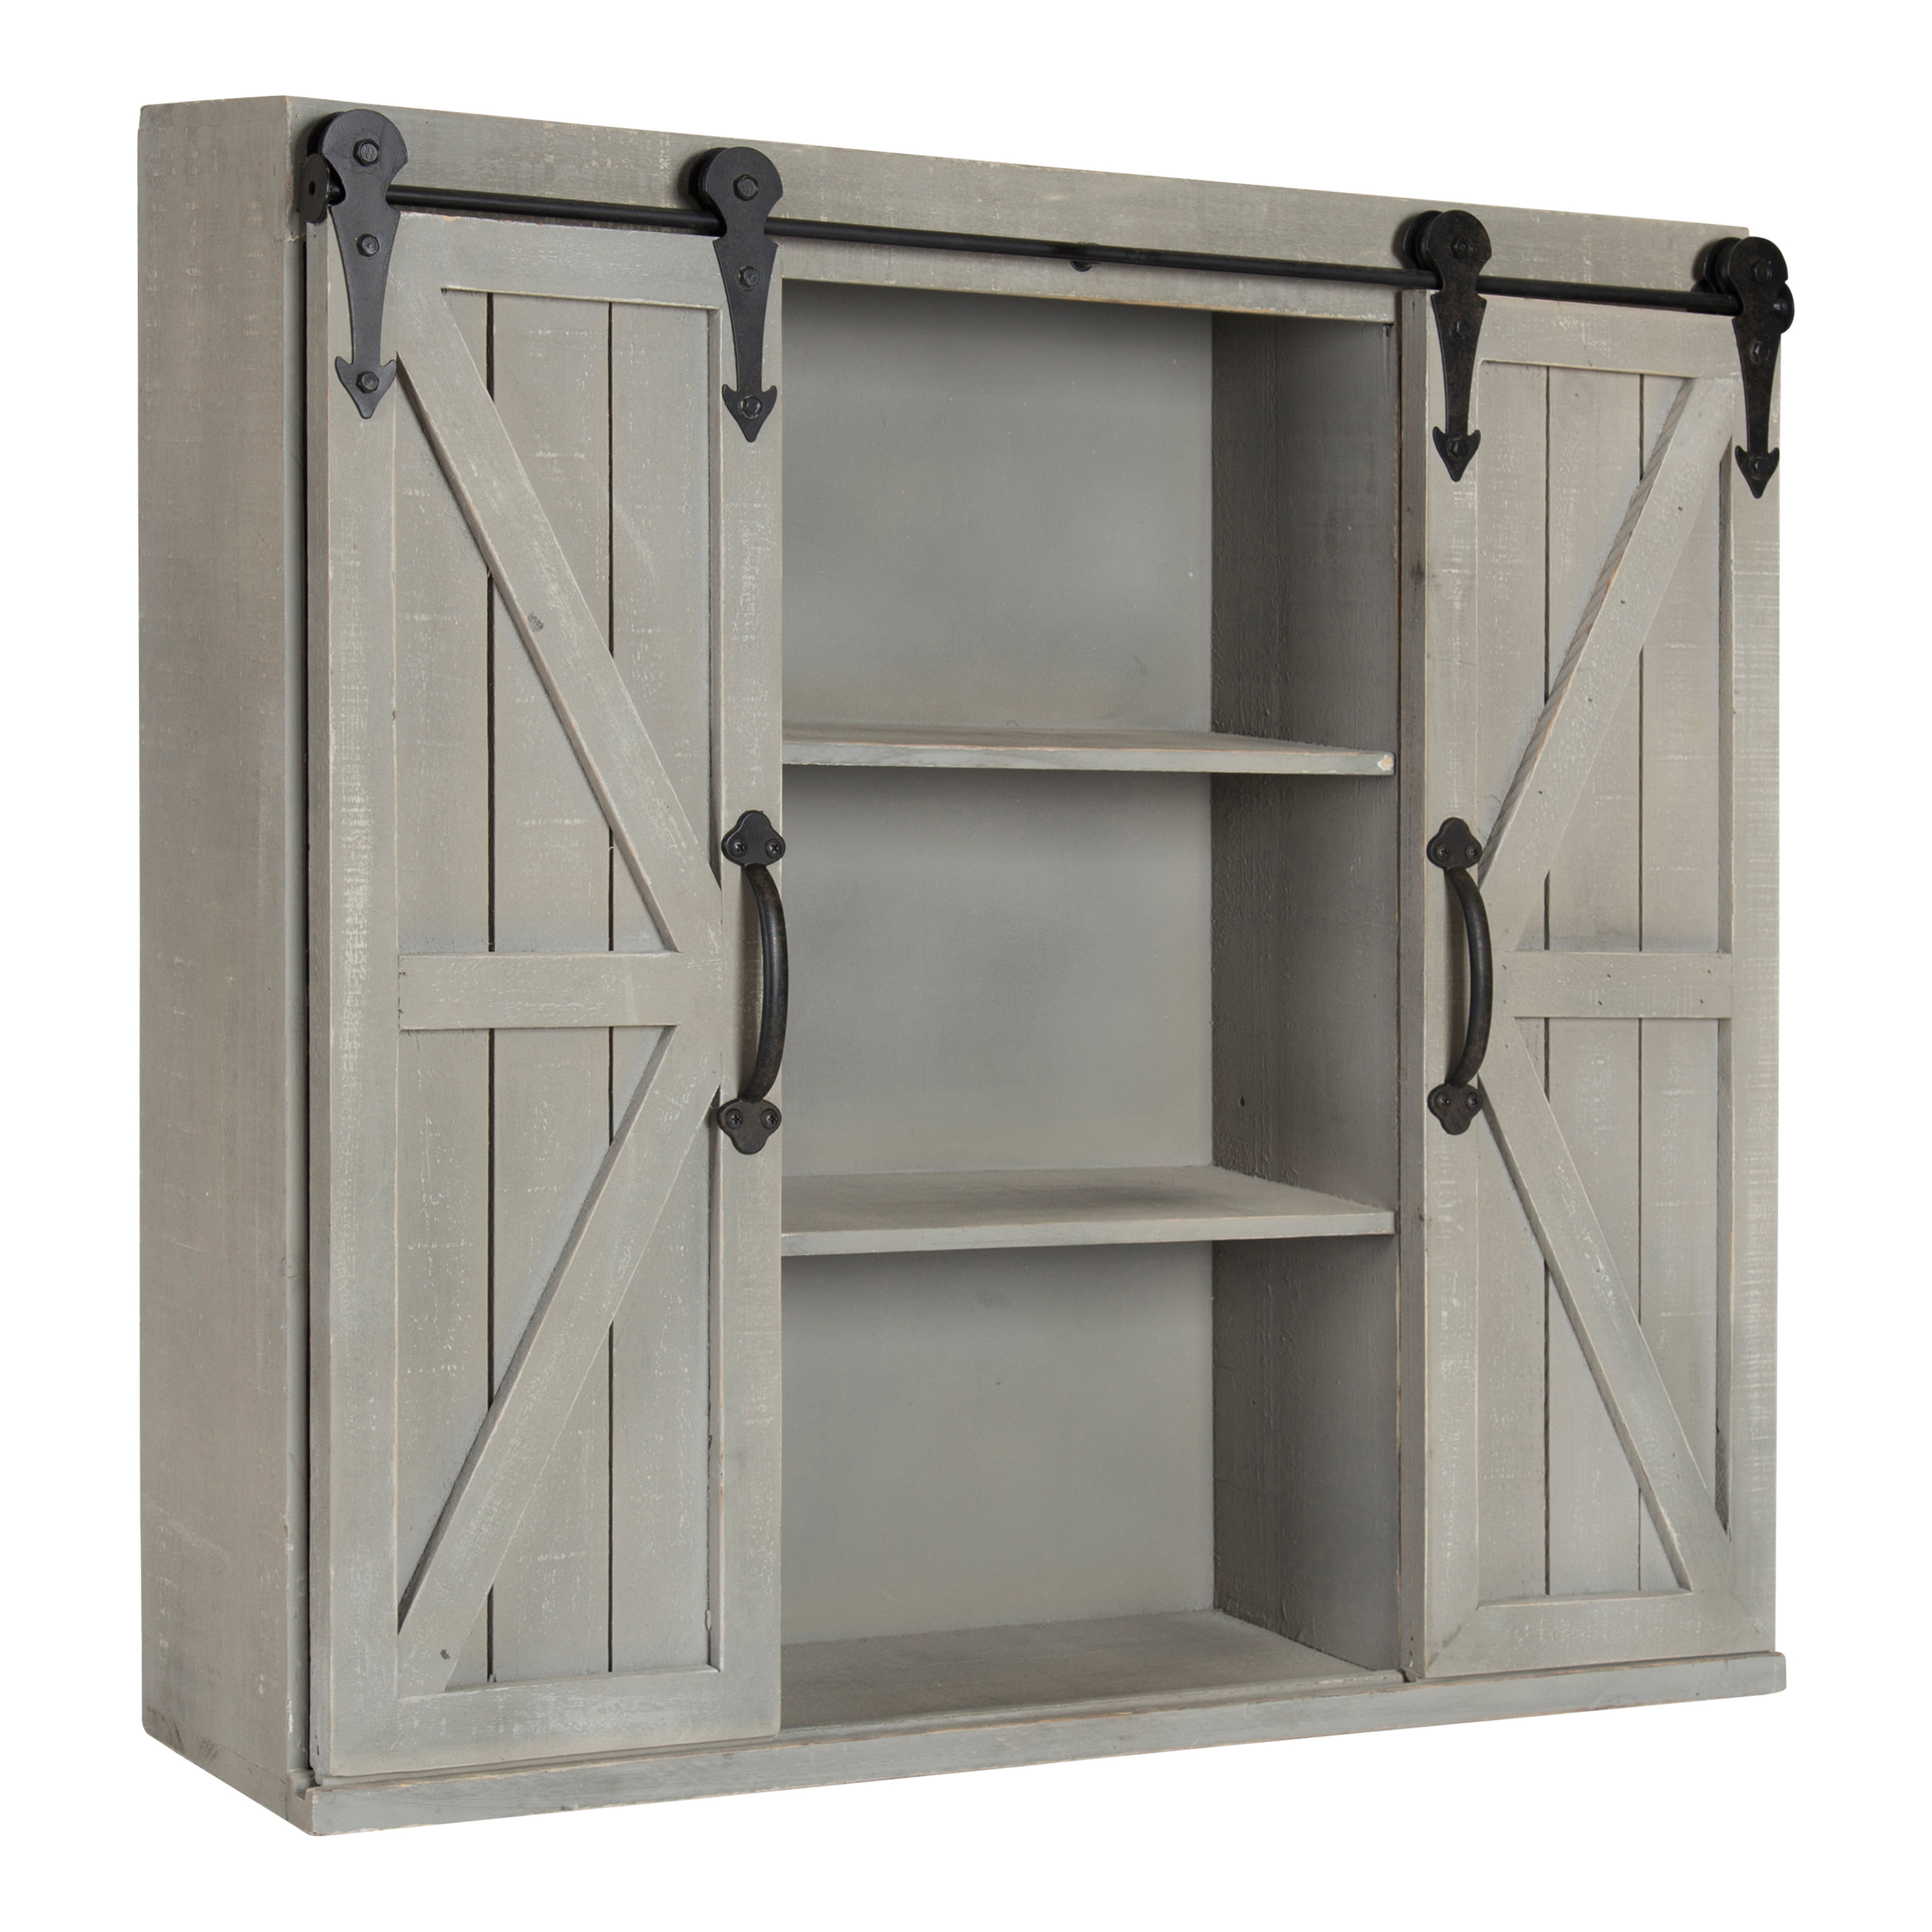 Kate And Laurel Cates Wood Wall Storage Cabinet With Two Sliding Barn Doors Rustic Gray Walmart Com Walmart Com